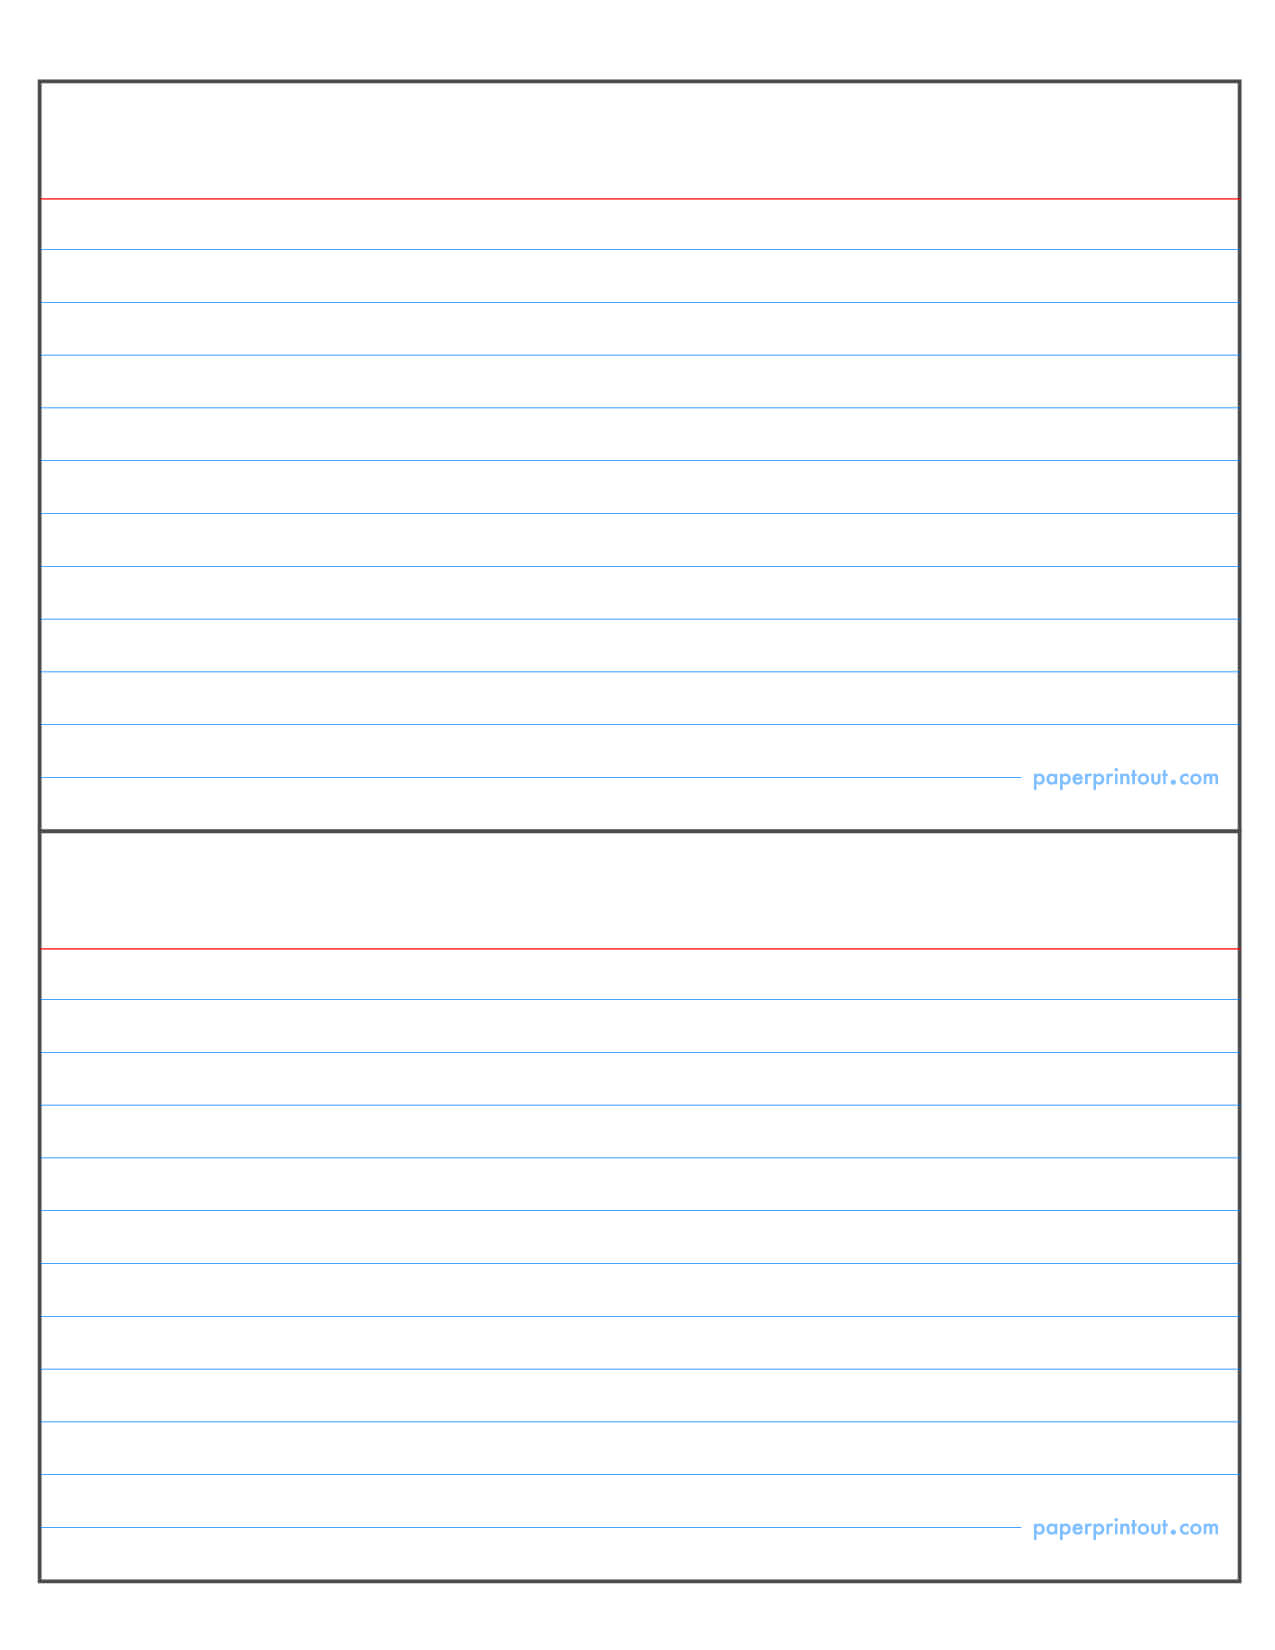 Index Card Template | E Commercewordpress Within 5 By 8 Index Card Template